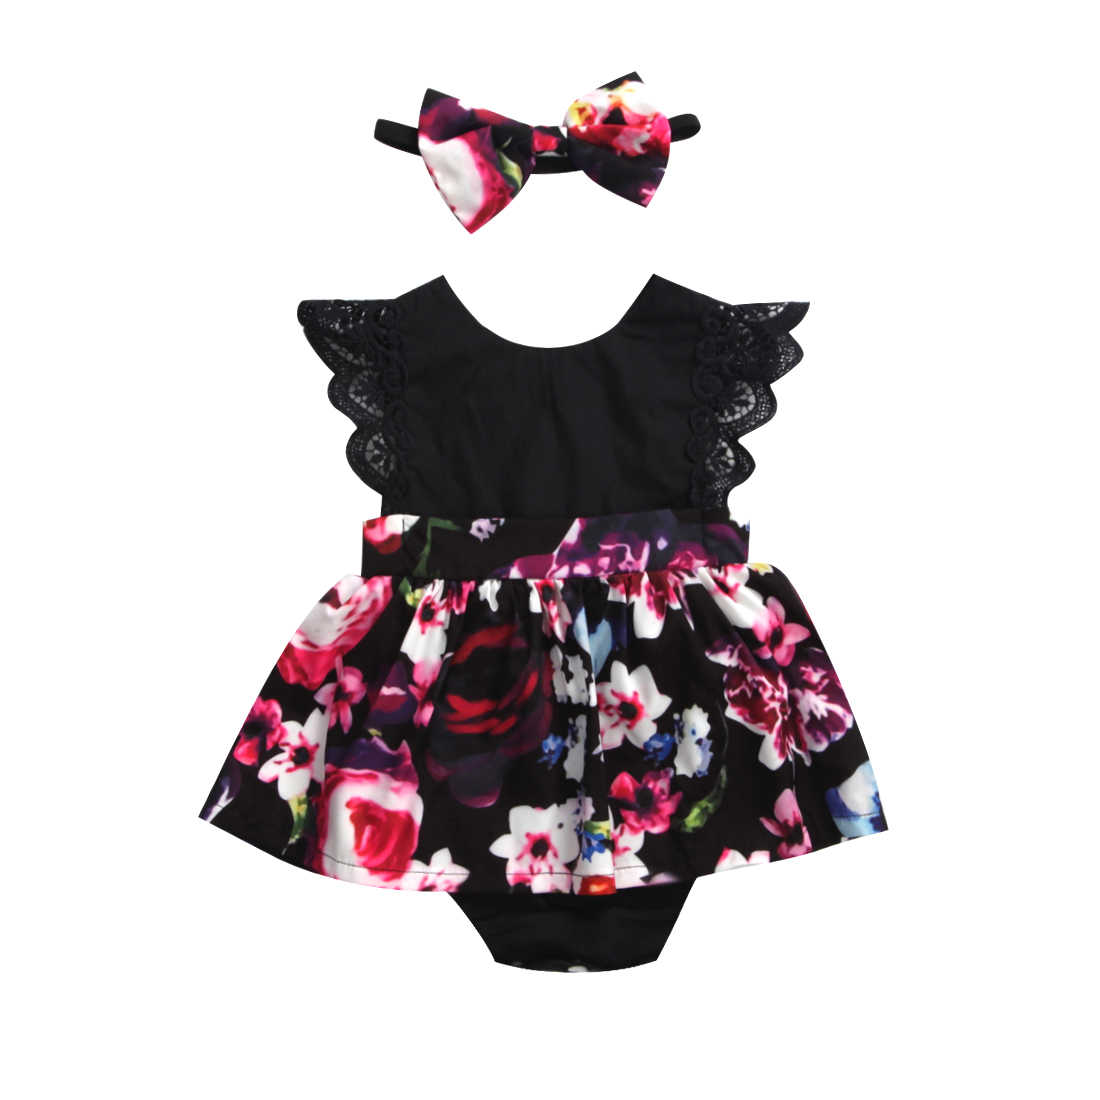 6101c310ae38 2019 Christmas Newborn Infant Kid Baby Girl Lace Romper Dress Floral Party  Sleeveless Dresses Costumes Set